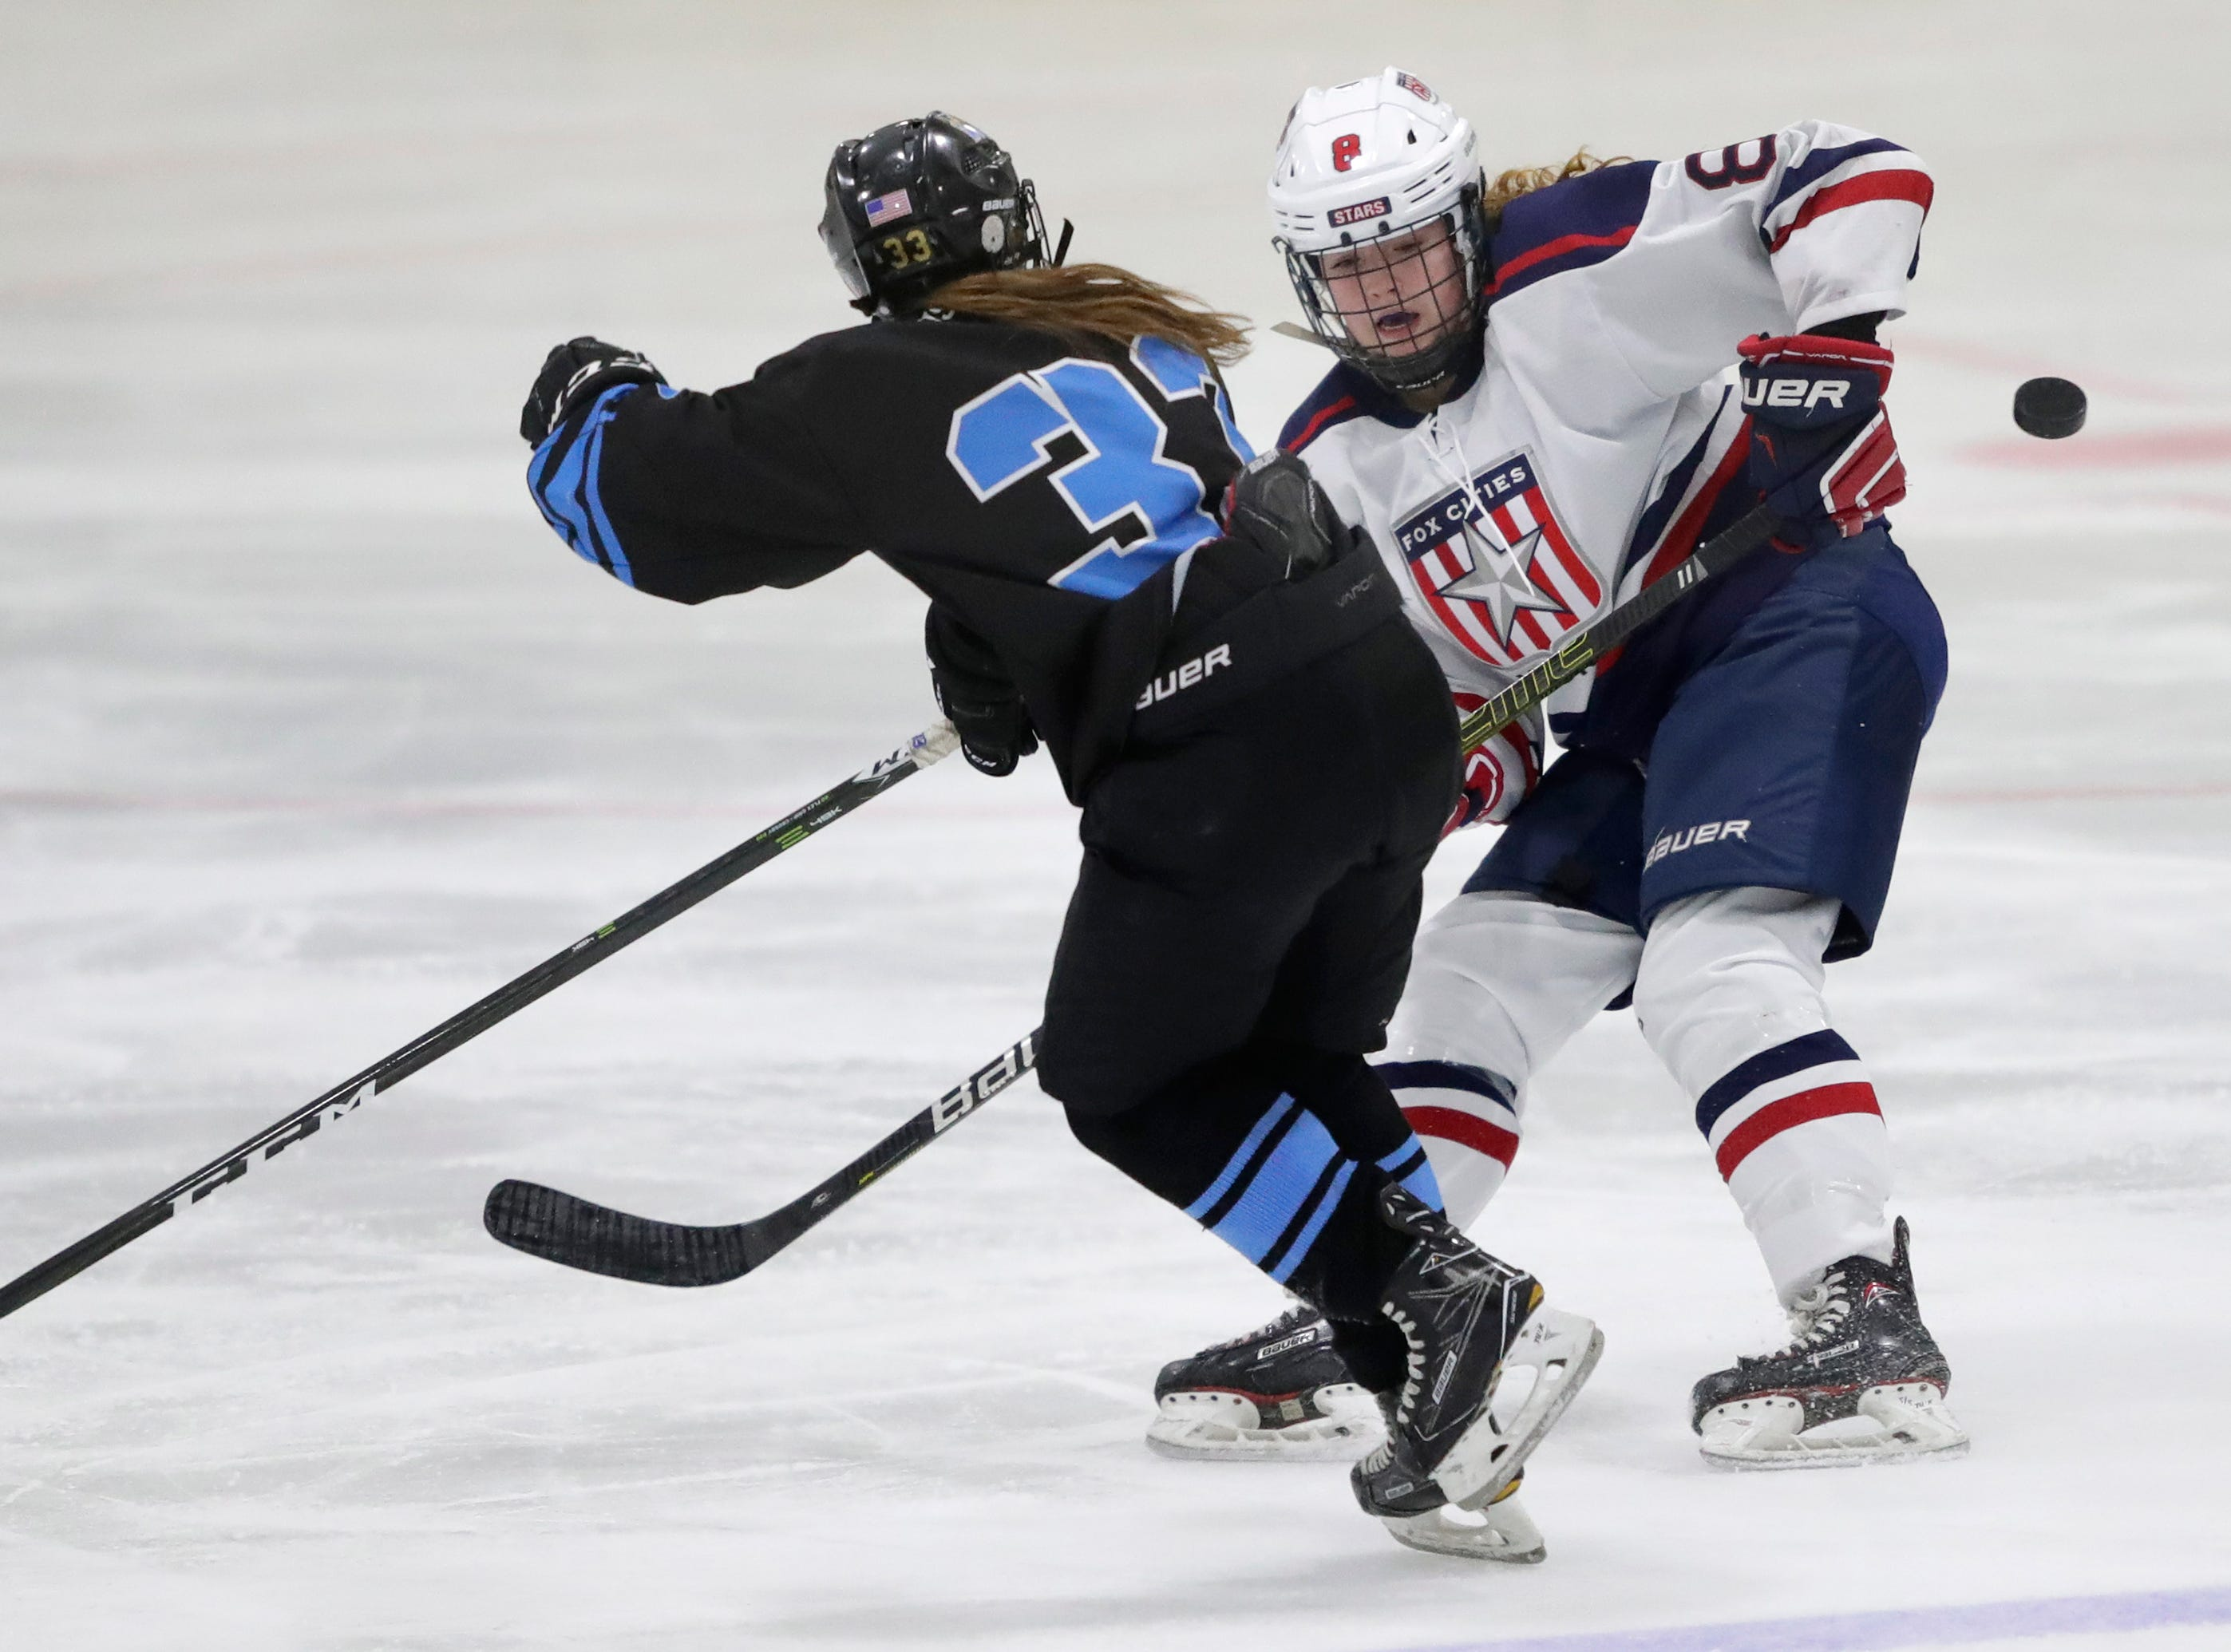 Fox Cities Stars' Victoria Nelson (8) goes up against Wisconsin Valley Union's Emily Nolan (33) during their girls hockey game Tuesday, December 18, 2018, at Tri-County Ice Arena in Fox Crossing, Wis. Dan Powers/USA TODAY NETWORK-Wisconsin